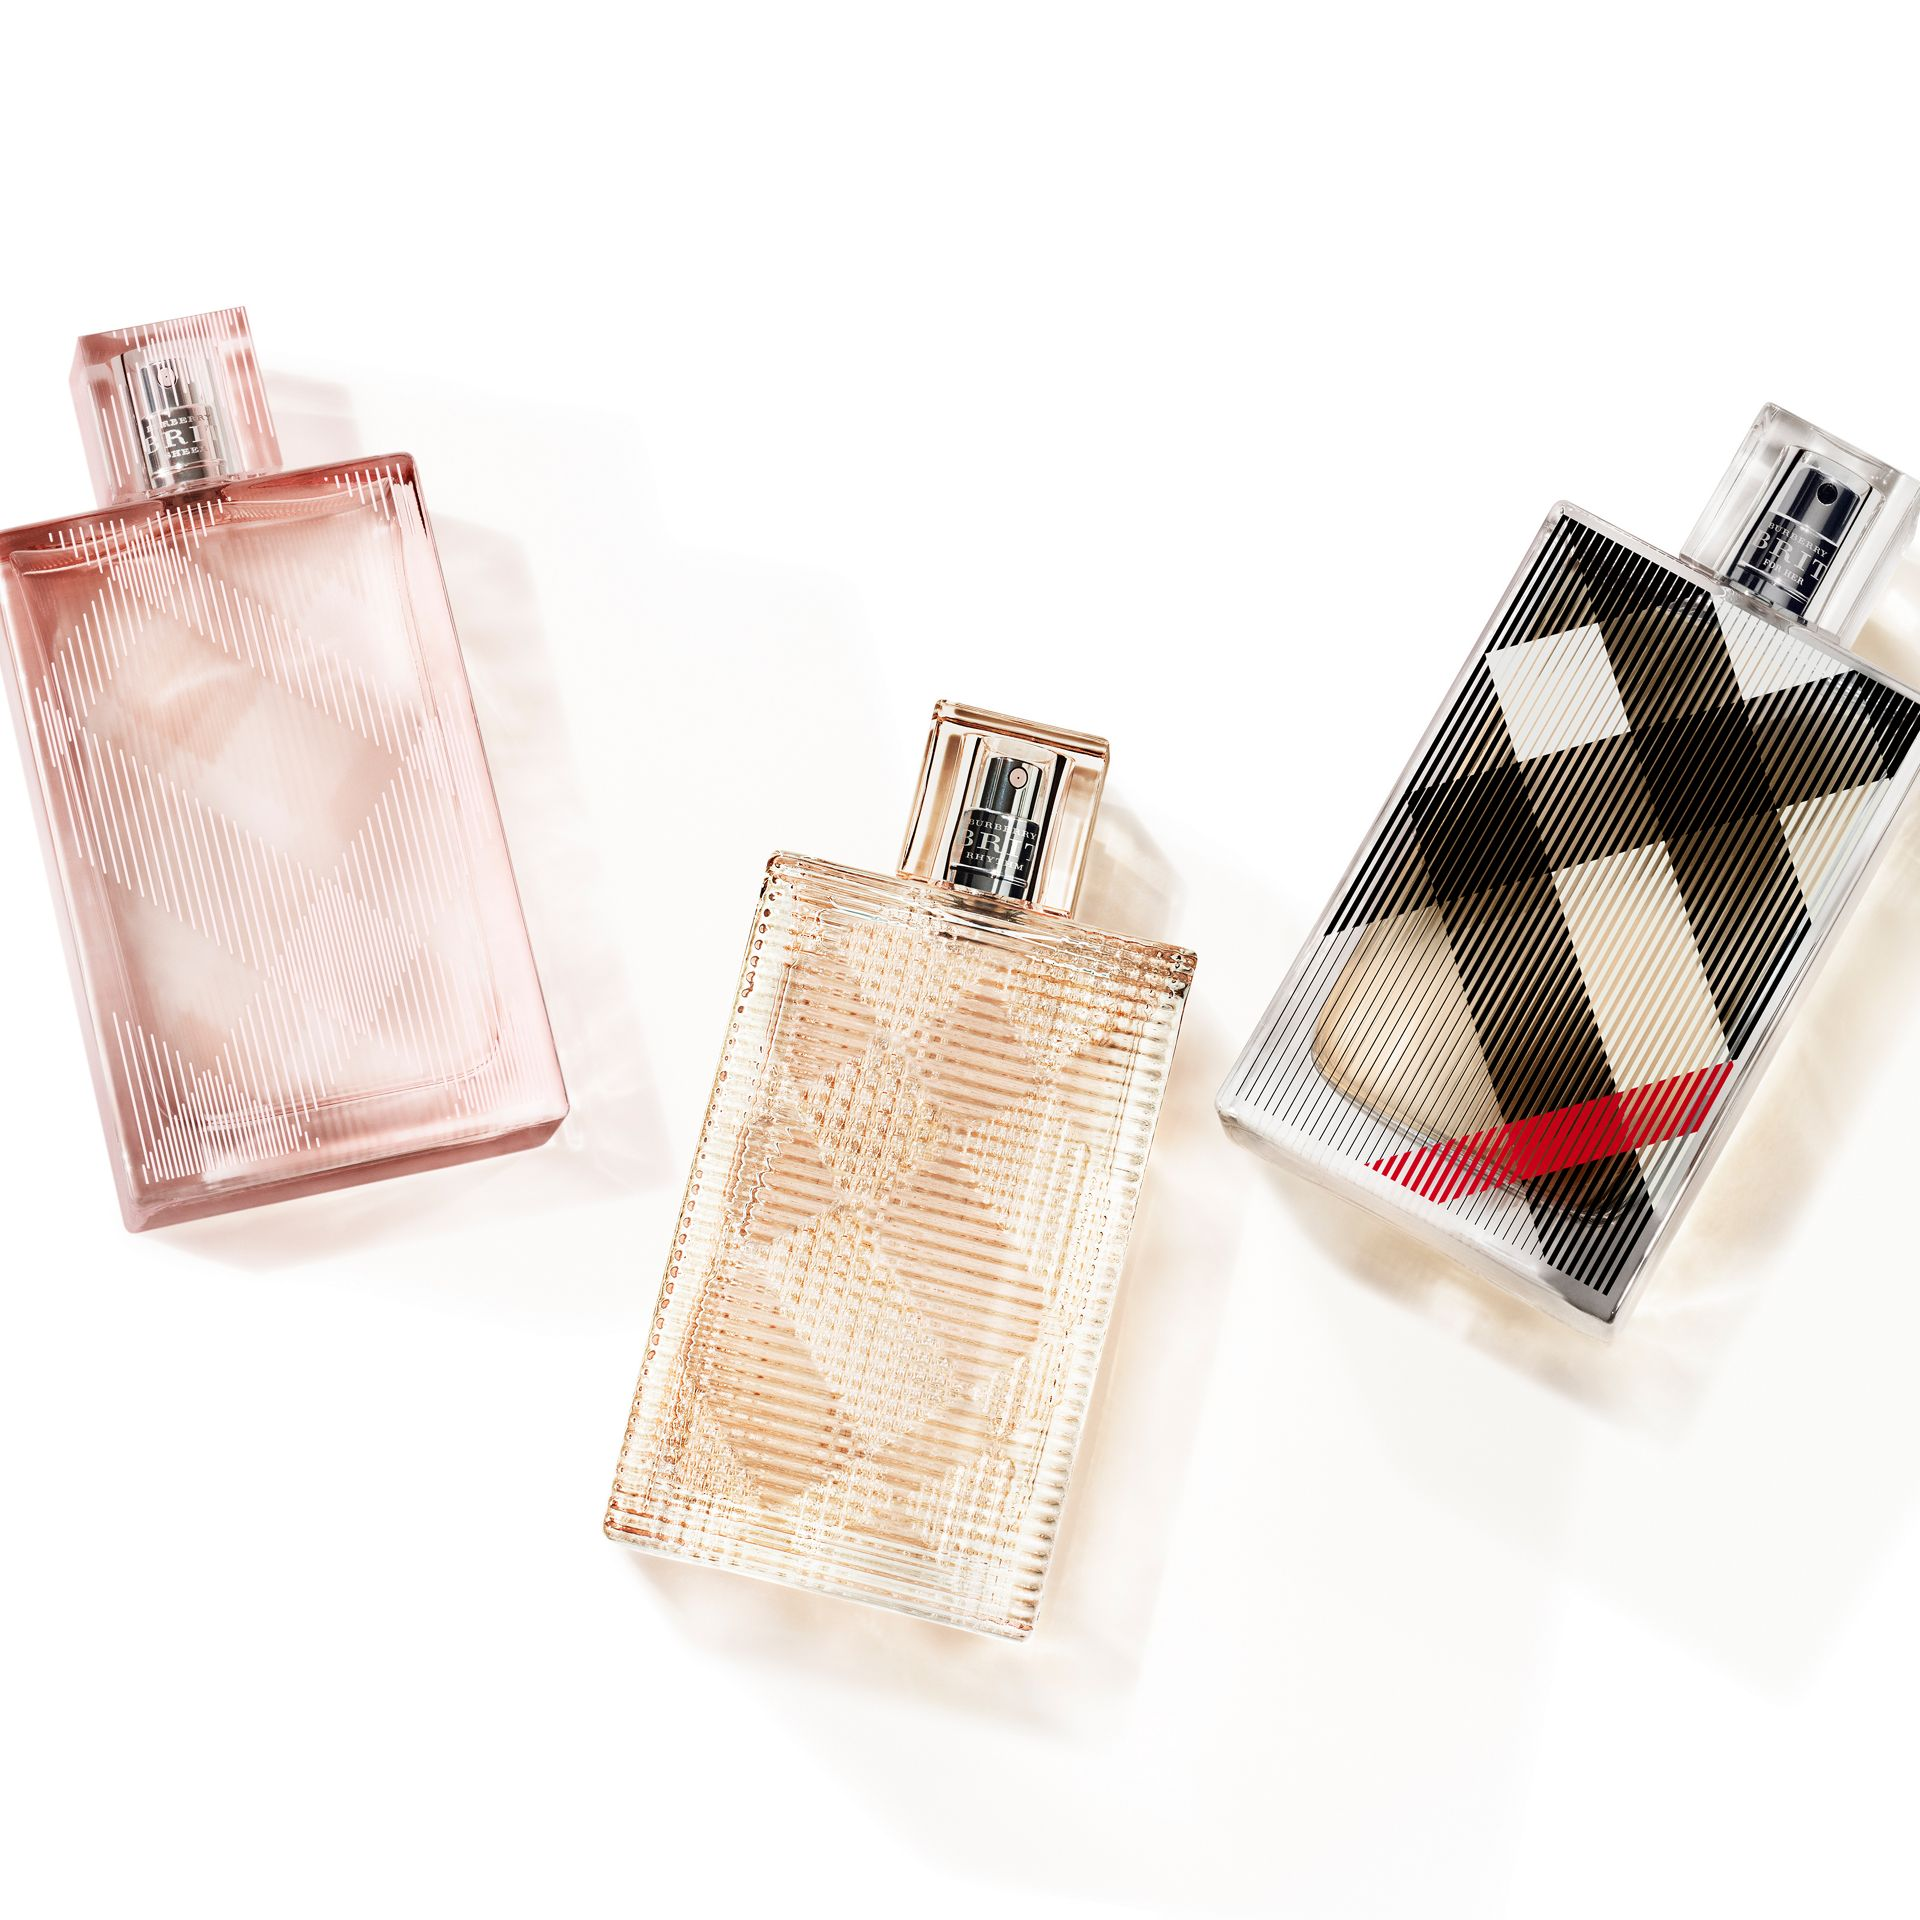 Eau de Toilette Burberry Brit for Her 50 ml - Femme | Burberry - photo de la galerie 2